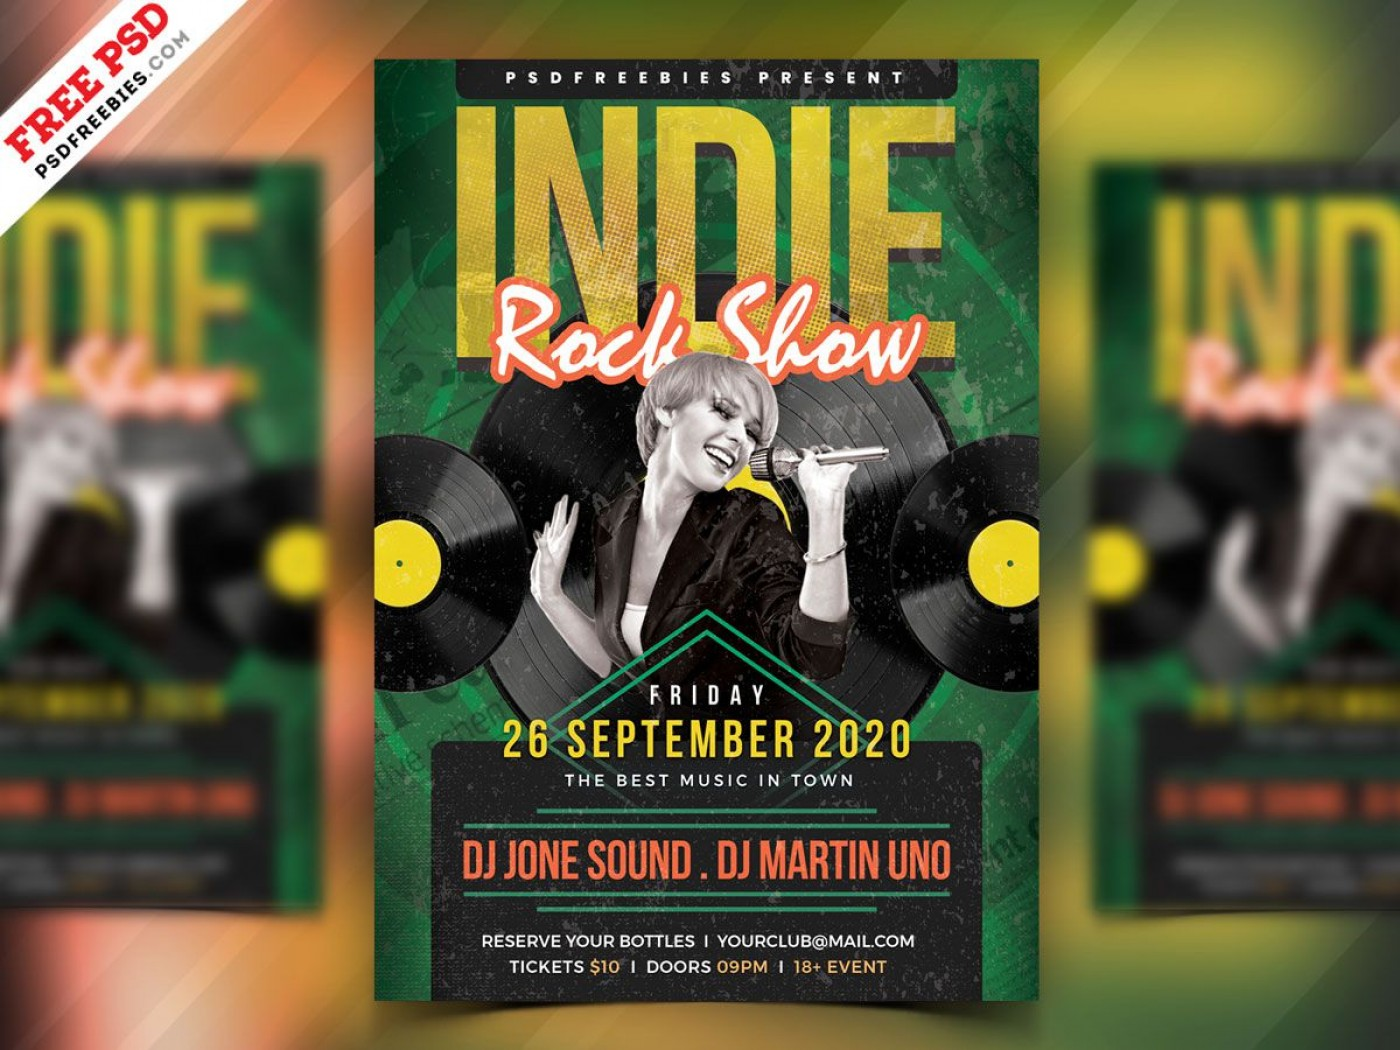 004 Incredible Free Rock Concert Poster Template Psd Inspiration 1400